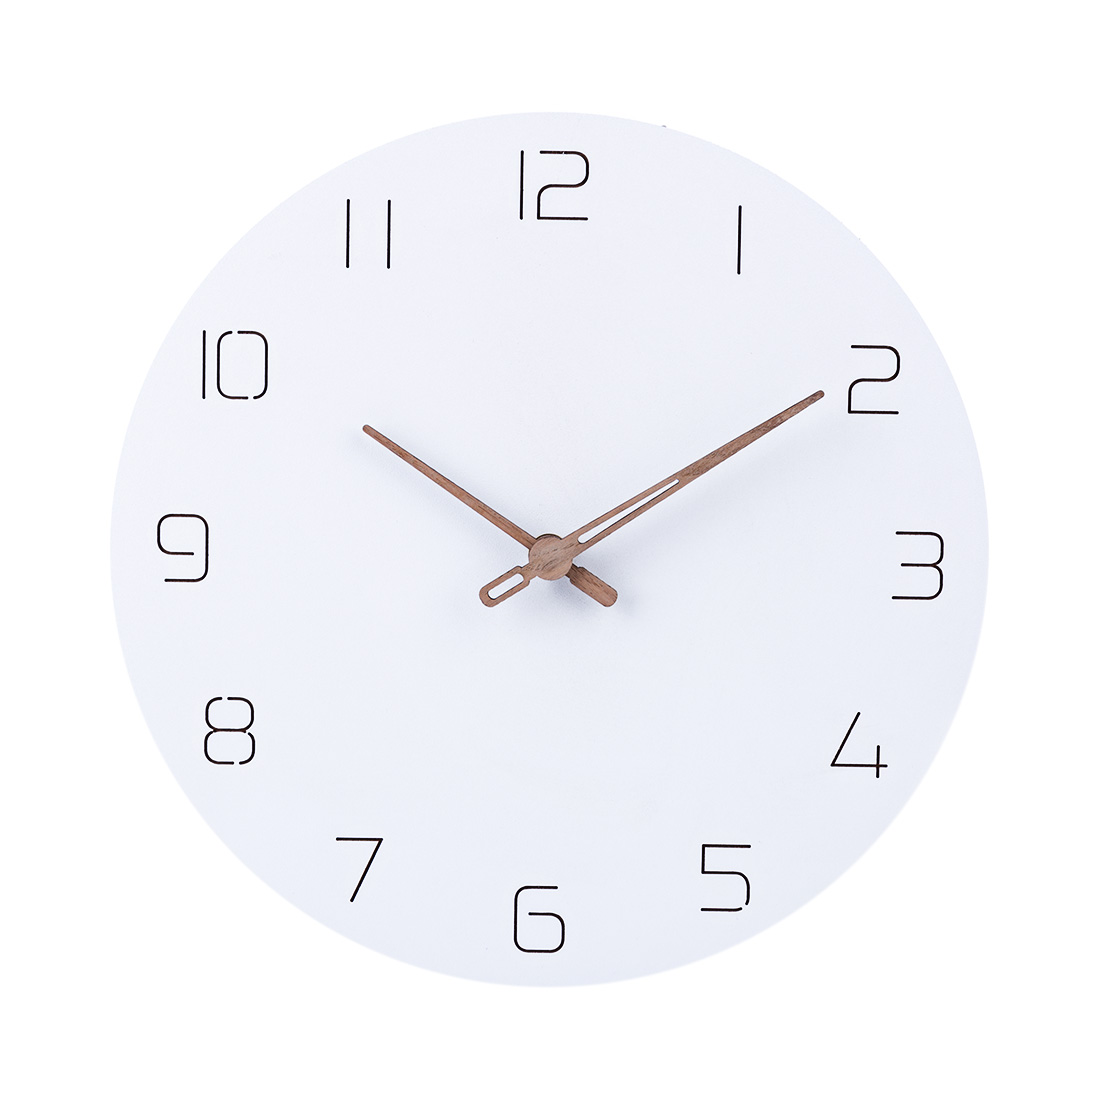 29cm Nordic Style Fashionable Simple Silent Wall Clocks For Home Decor Pure White Type Wall Clock Quartz Modern Design Timer